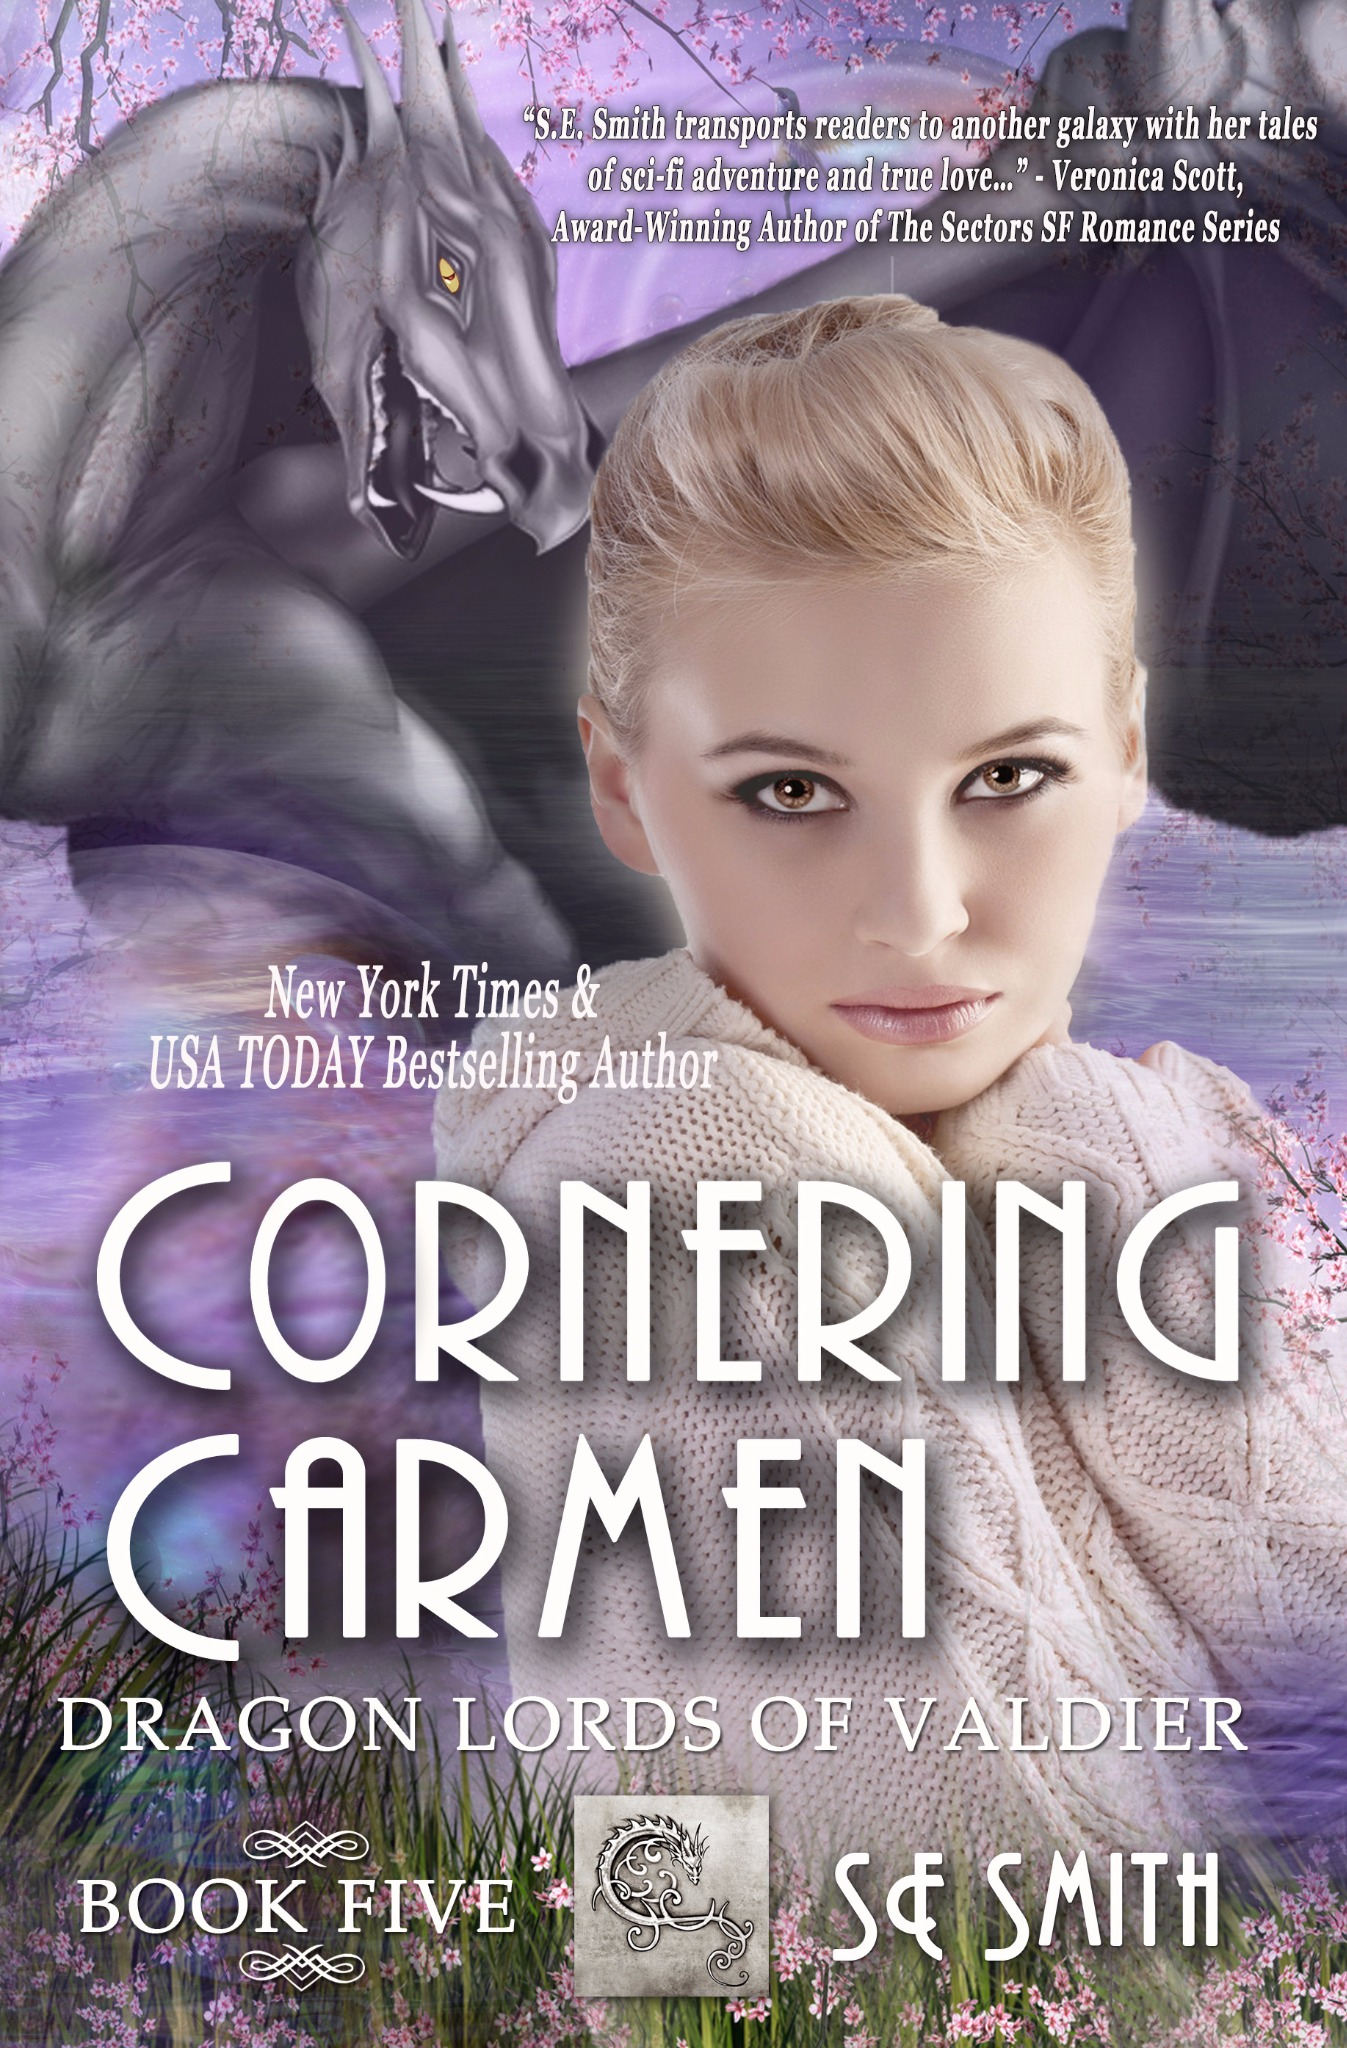 Cornering Carmen: Dragon Lords of Valdier Book 5 (ebook: Kindle and epub)